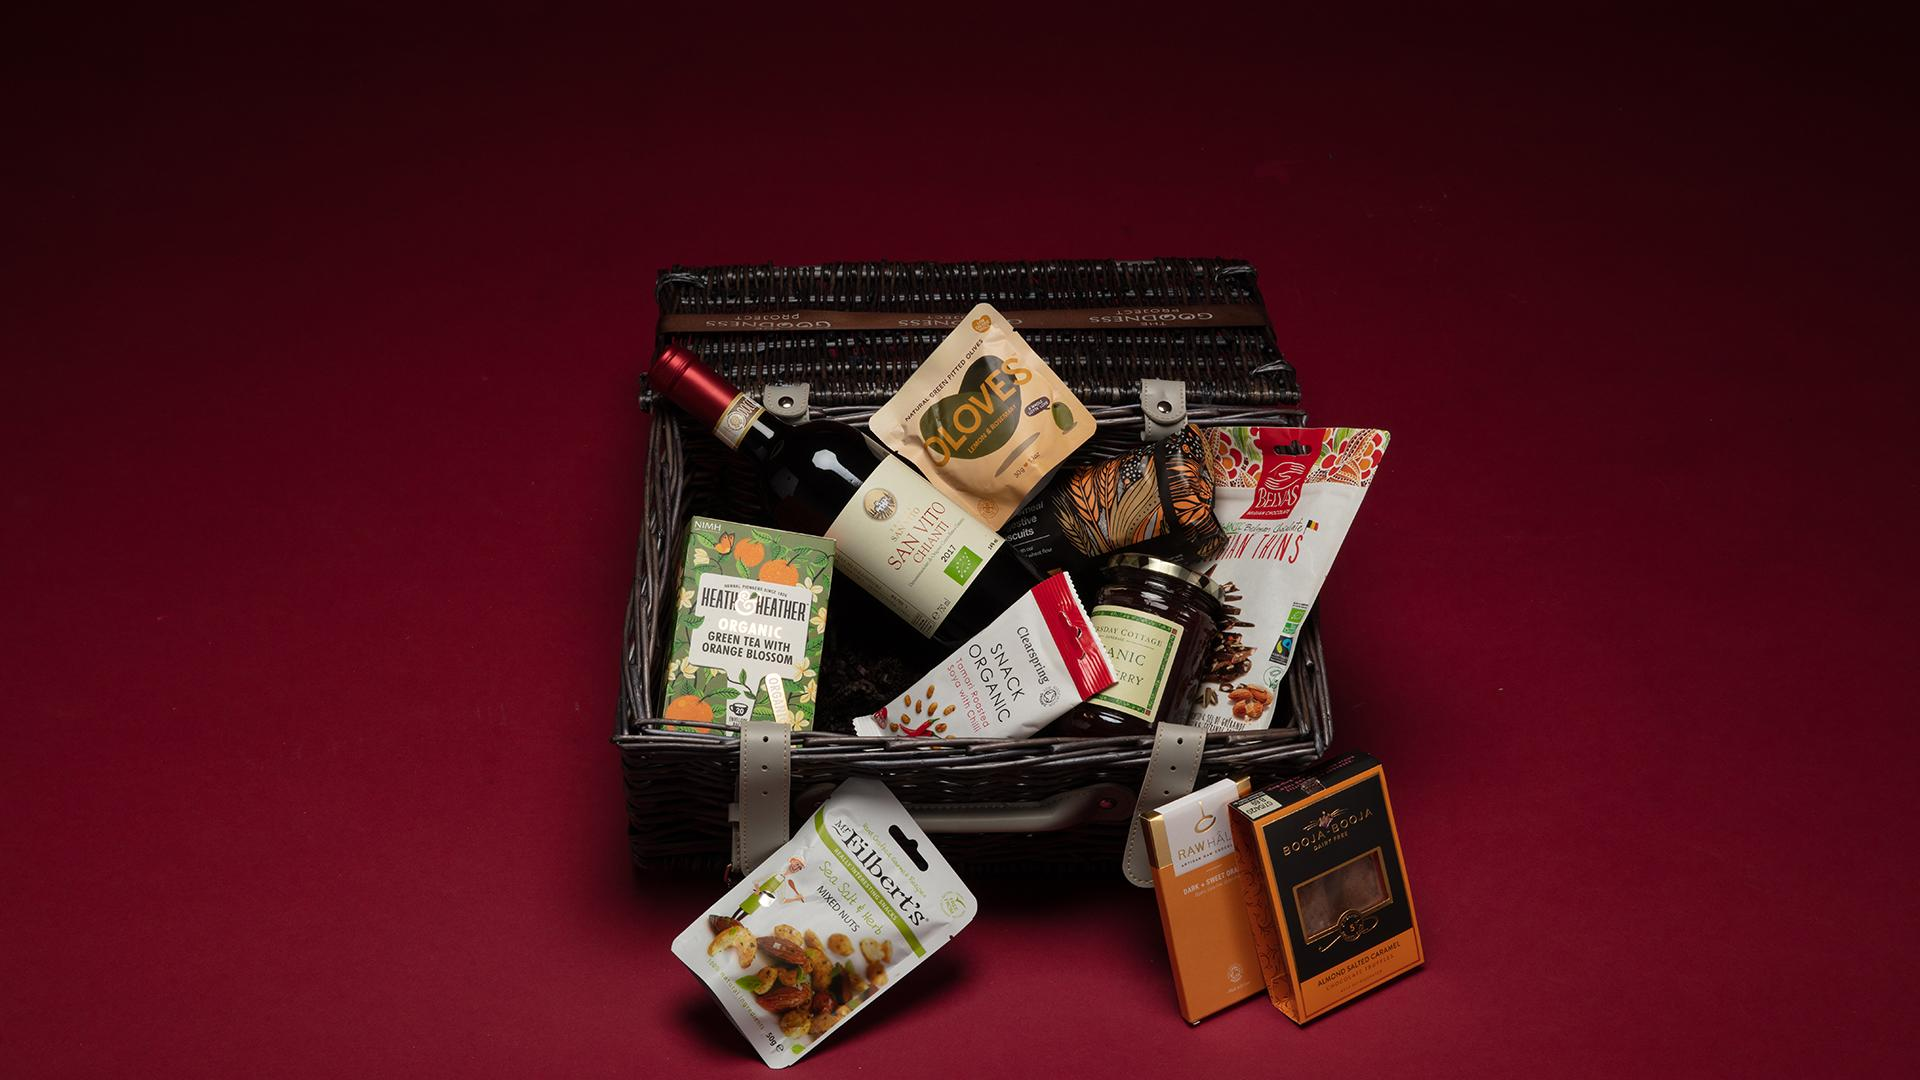 Christmas Hampers 2019: The Goodness Project Vegan Hamper, £75